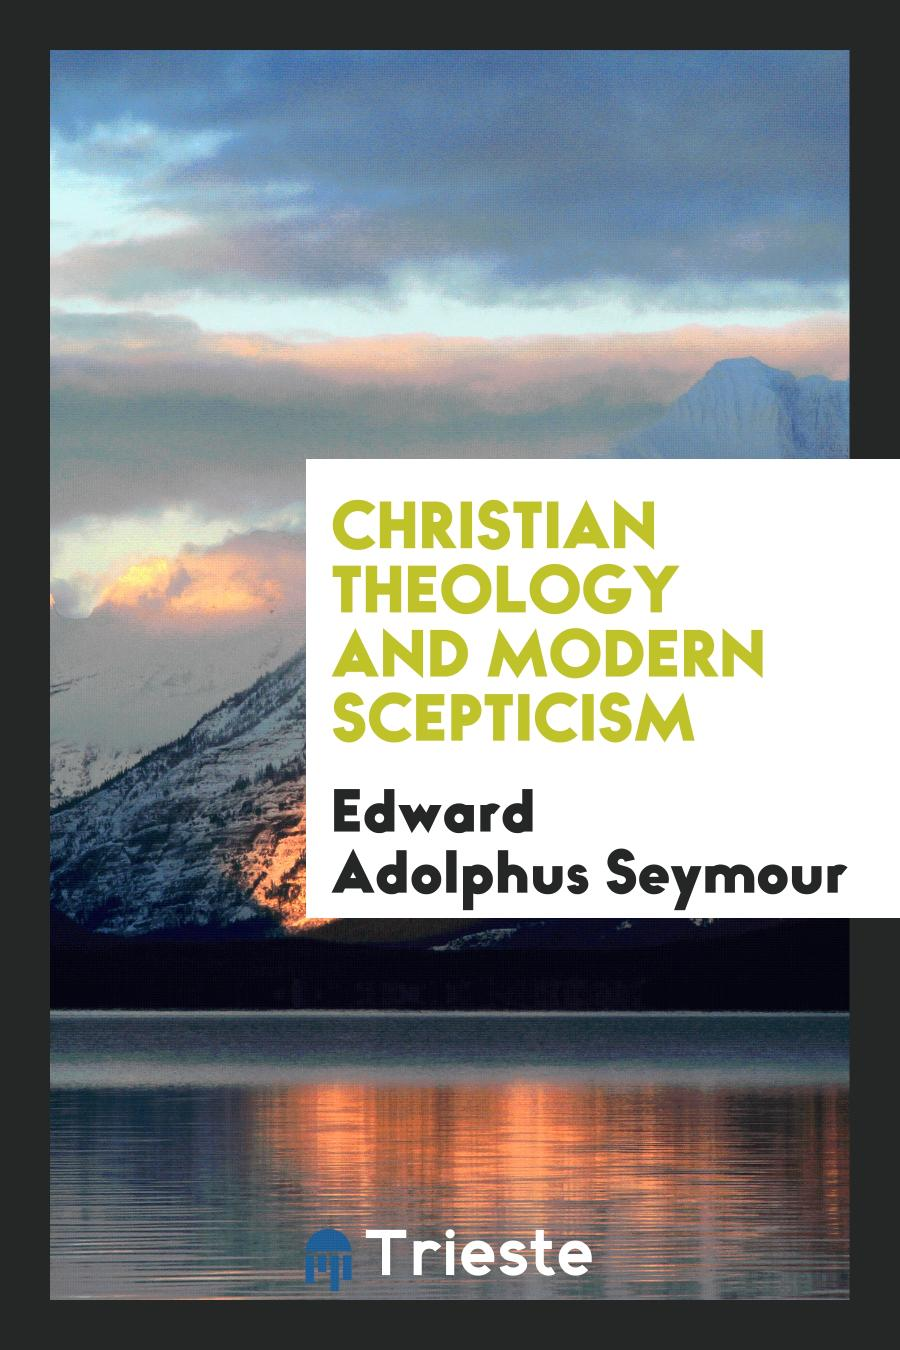 Christian Theology and Modern Scepticism